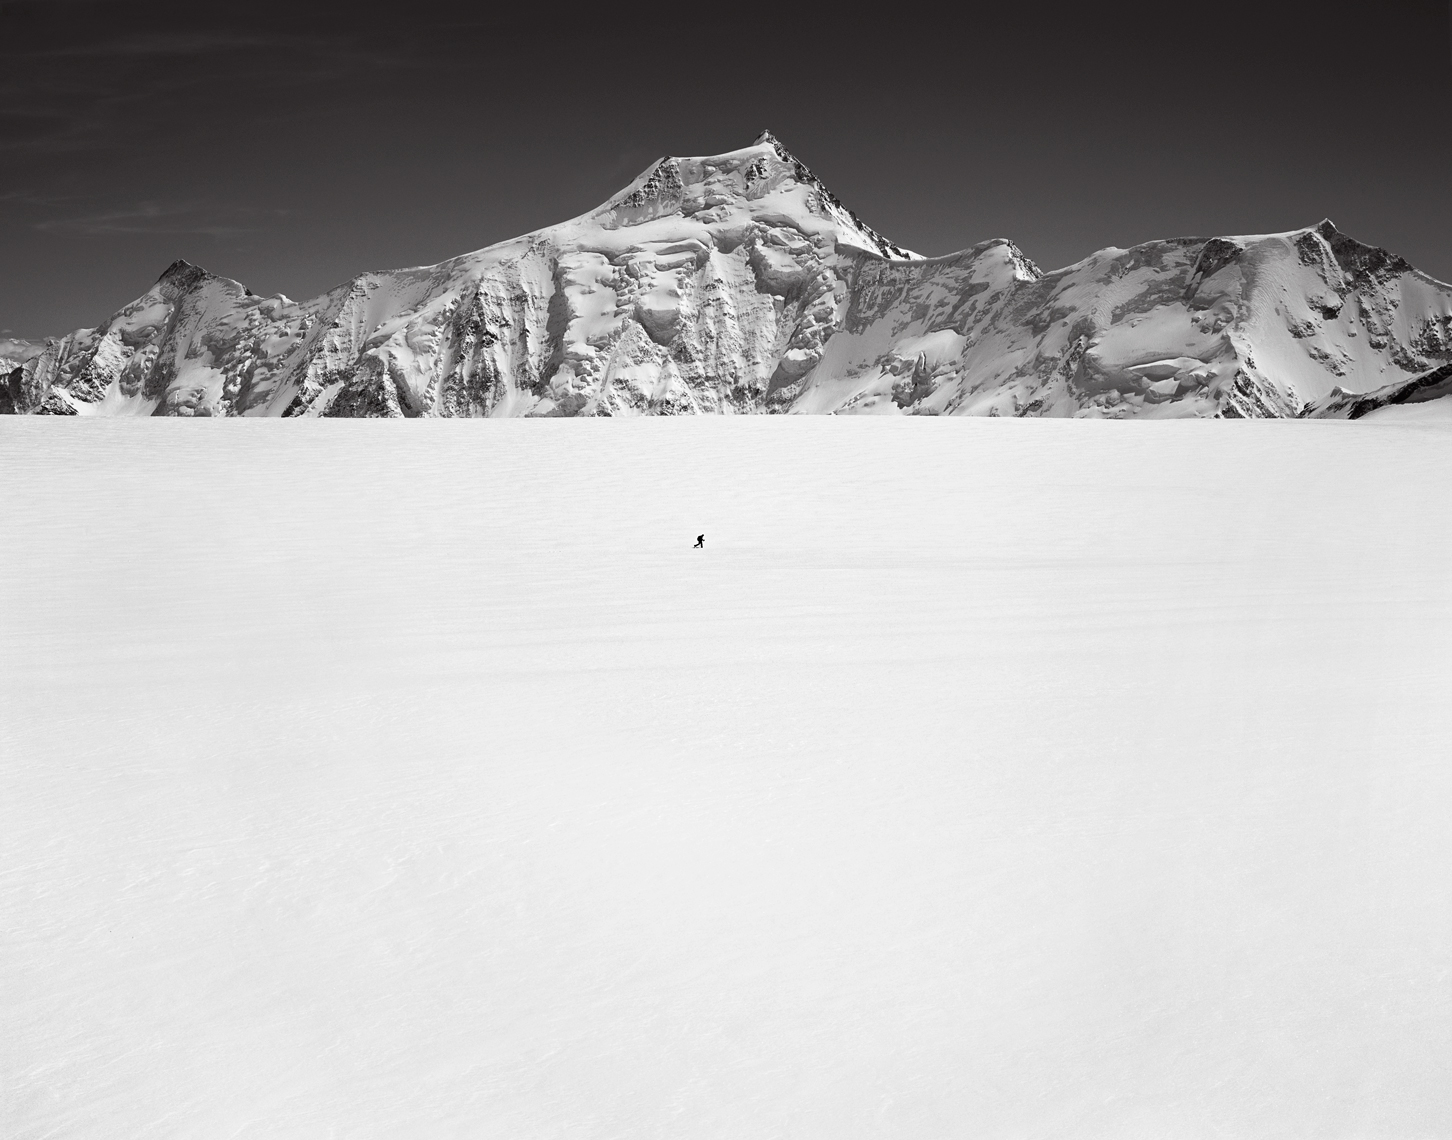 Jon Wyatt Photography - Solo ski tourer in front of Finsteraarhorn mountain, Bernese Oberland,  Switzerland